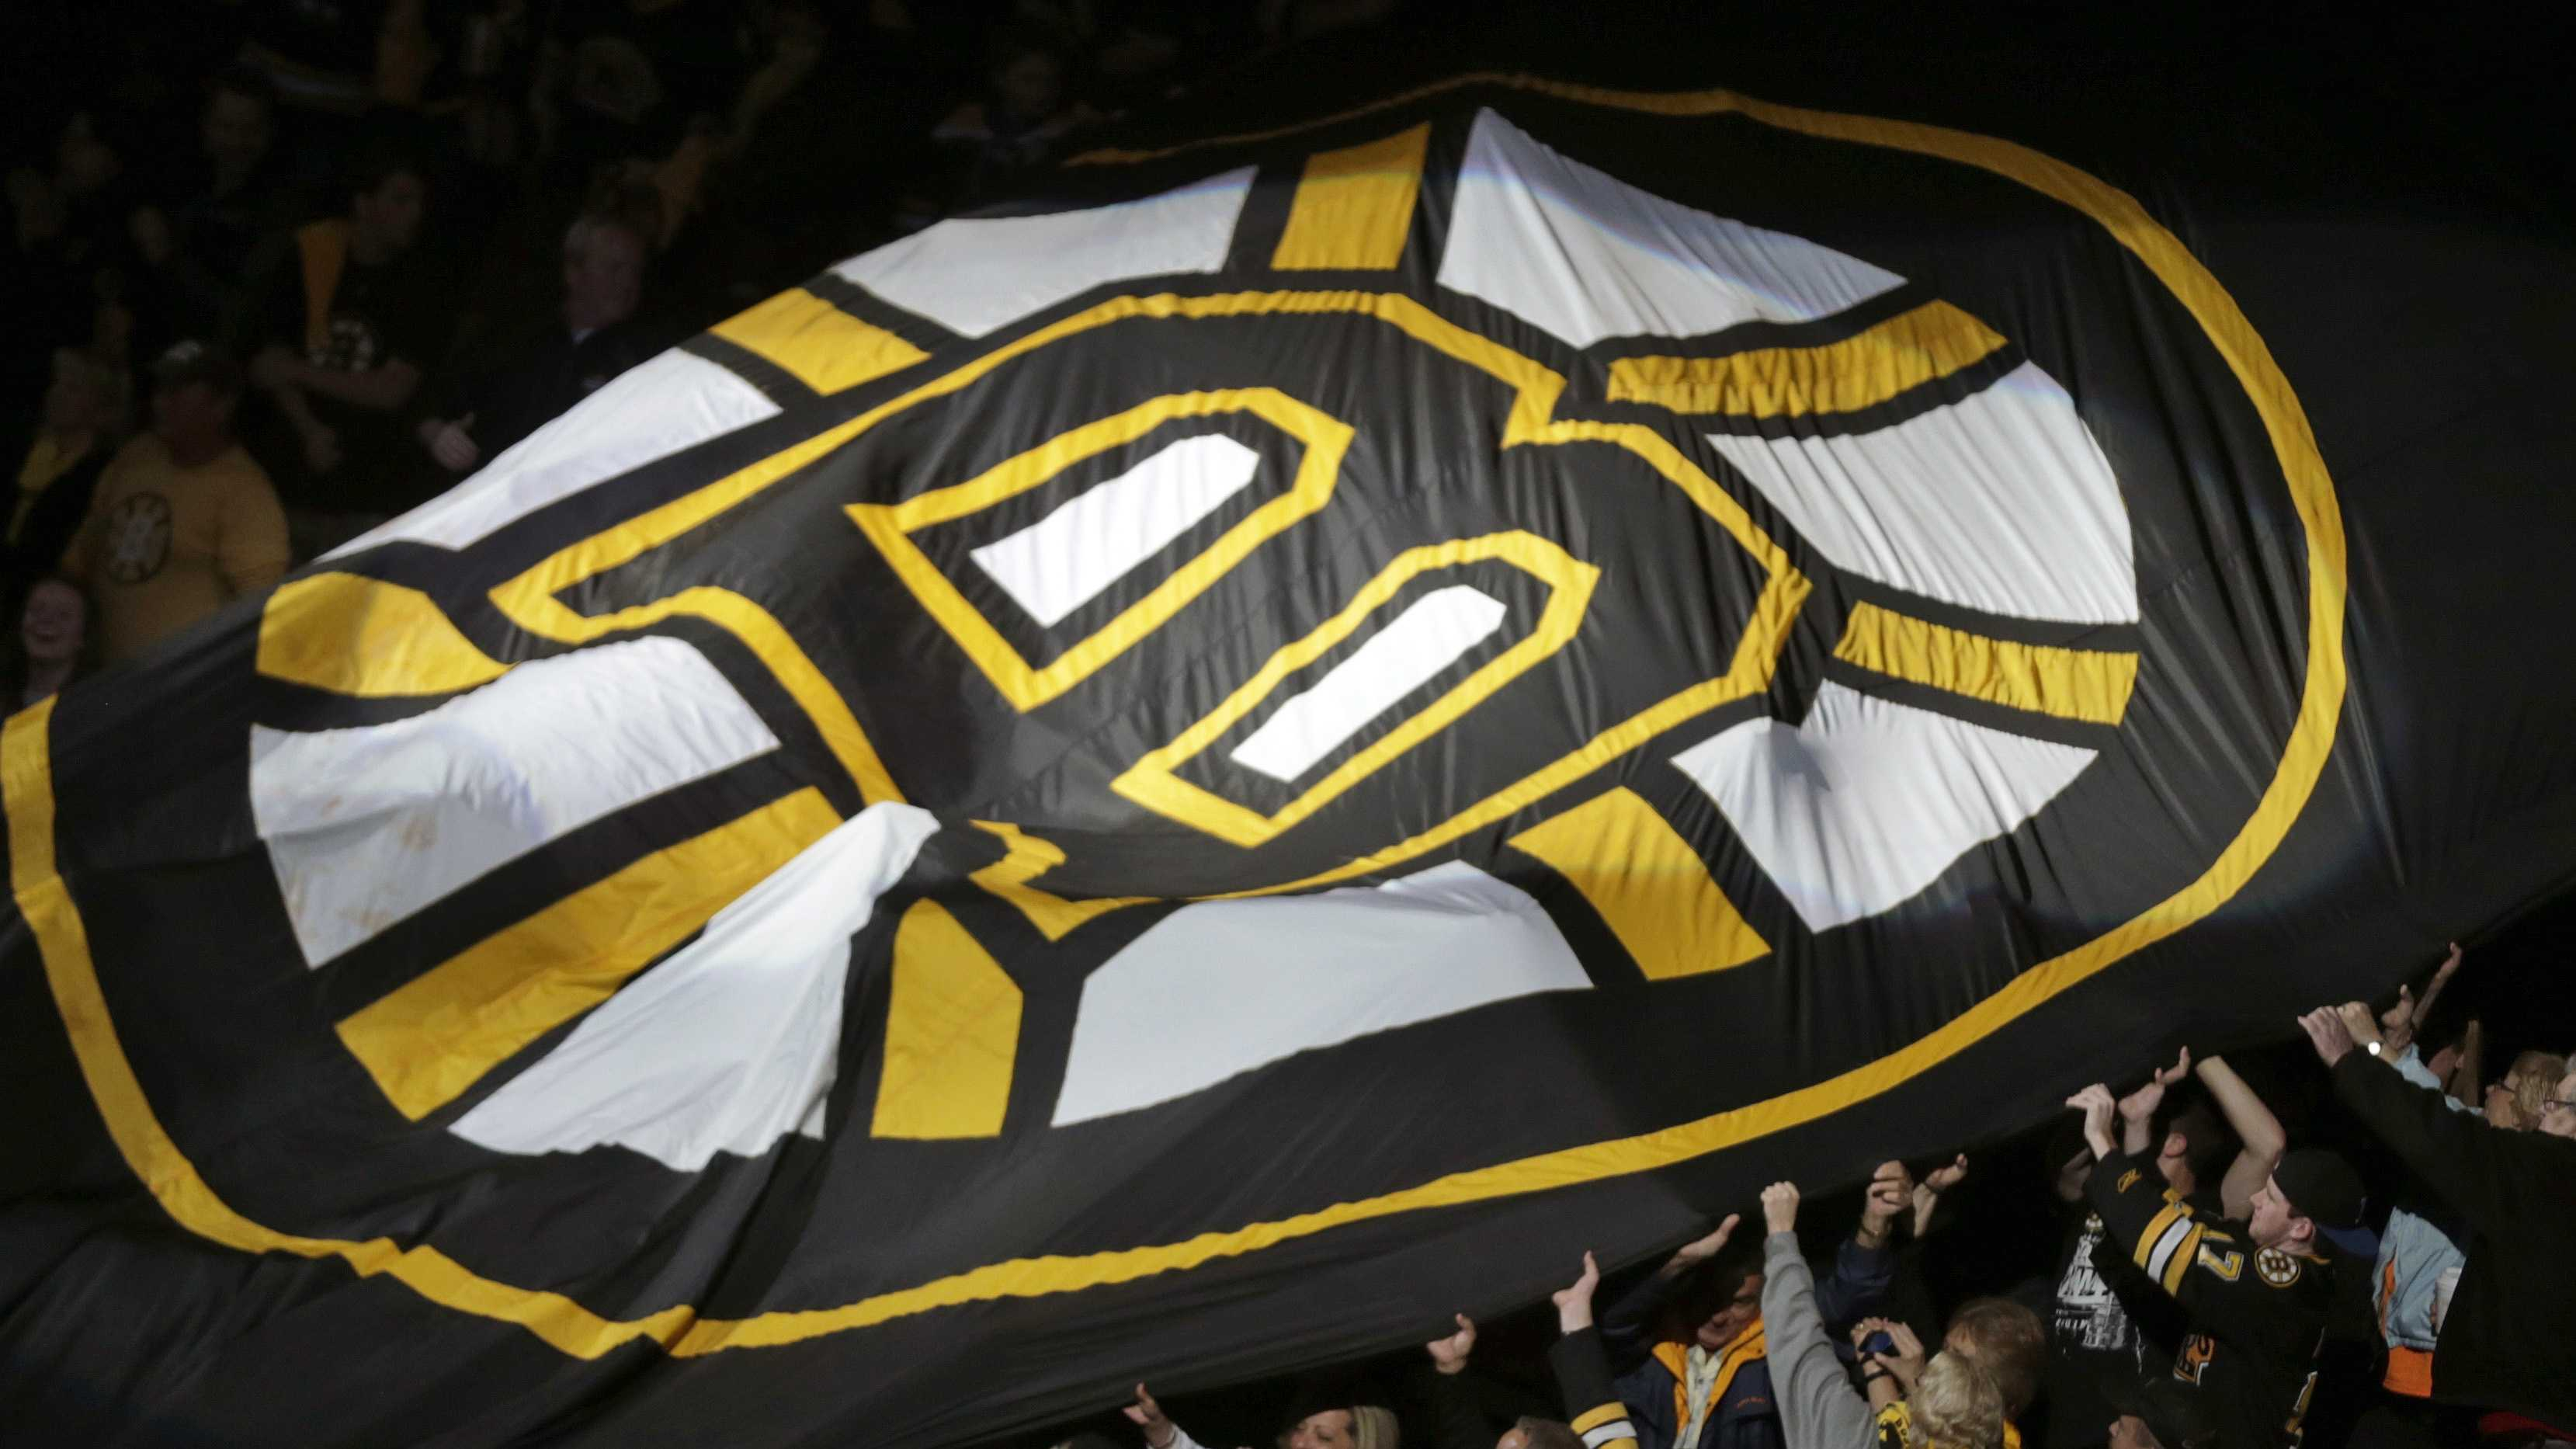 Bruins Flag in Stands 061213 AP